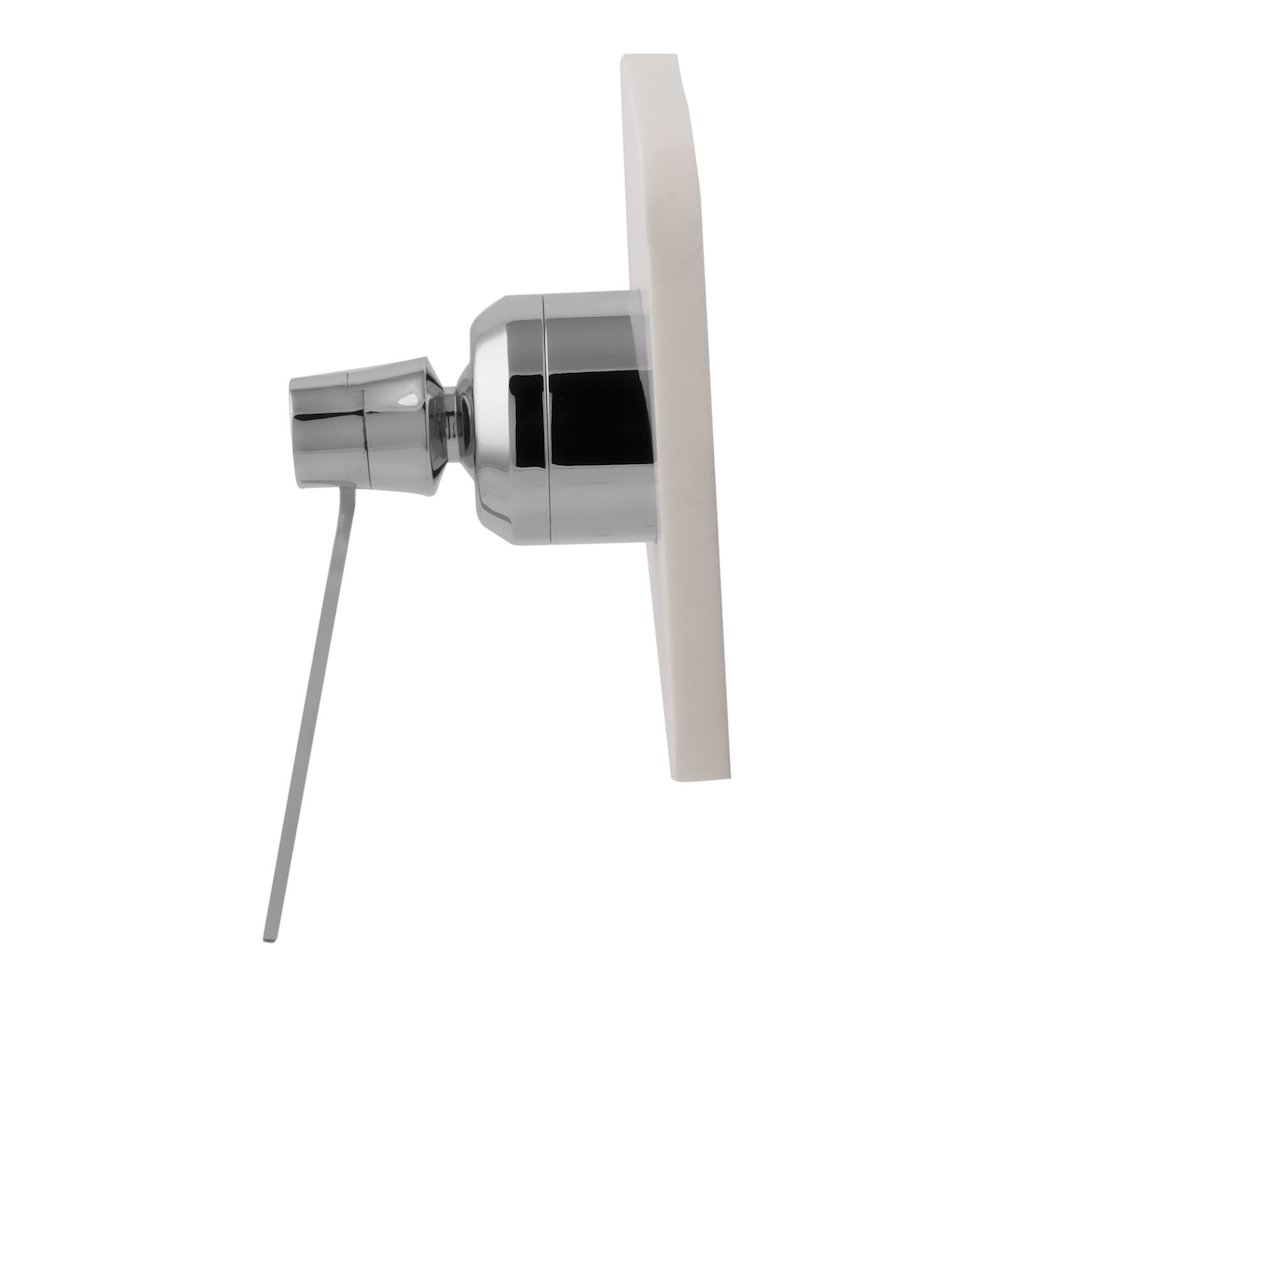 Concealed Shower Mixer Seve Glacier White - 360 - 0